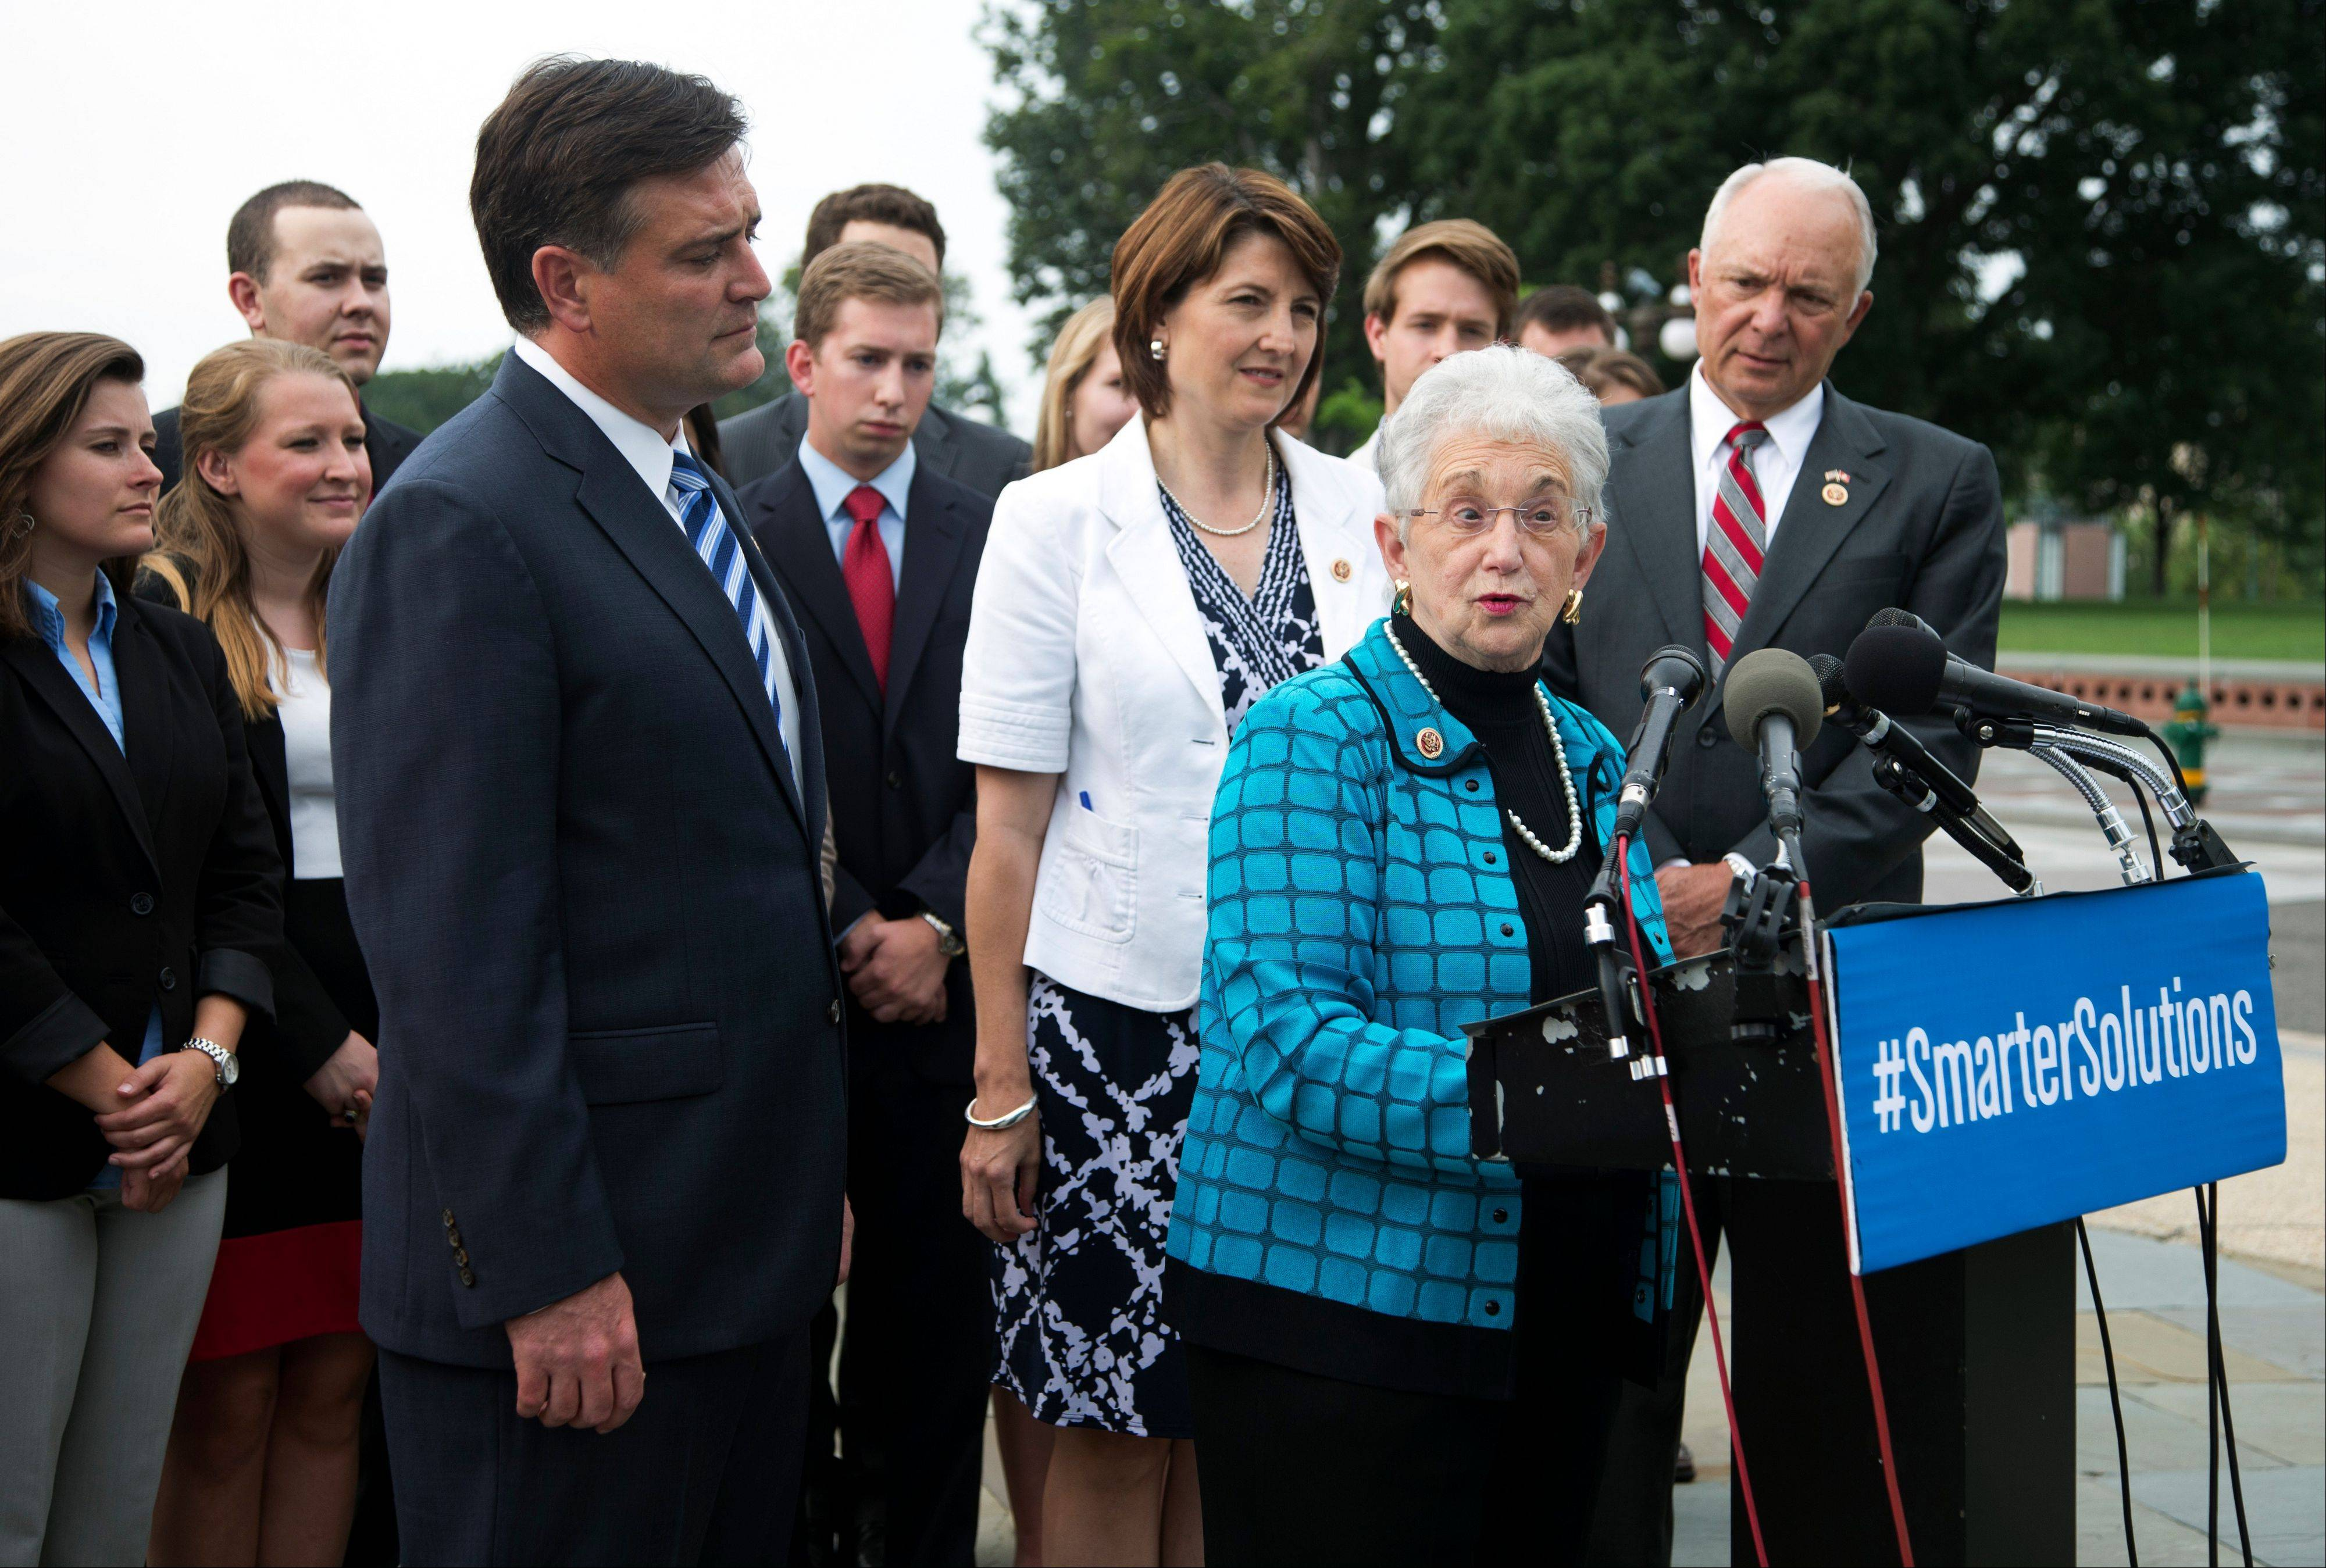 Rep. Virginia Foxx, R-N.C., front right, with Reps. Luke Messer, R-Ind., from left, Cathy McMorris Rodgers, R-Wash., and John Kline, R-Minn., talk about student loans on Capitol Hill in Washington, Wednesday.